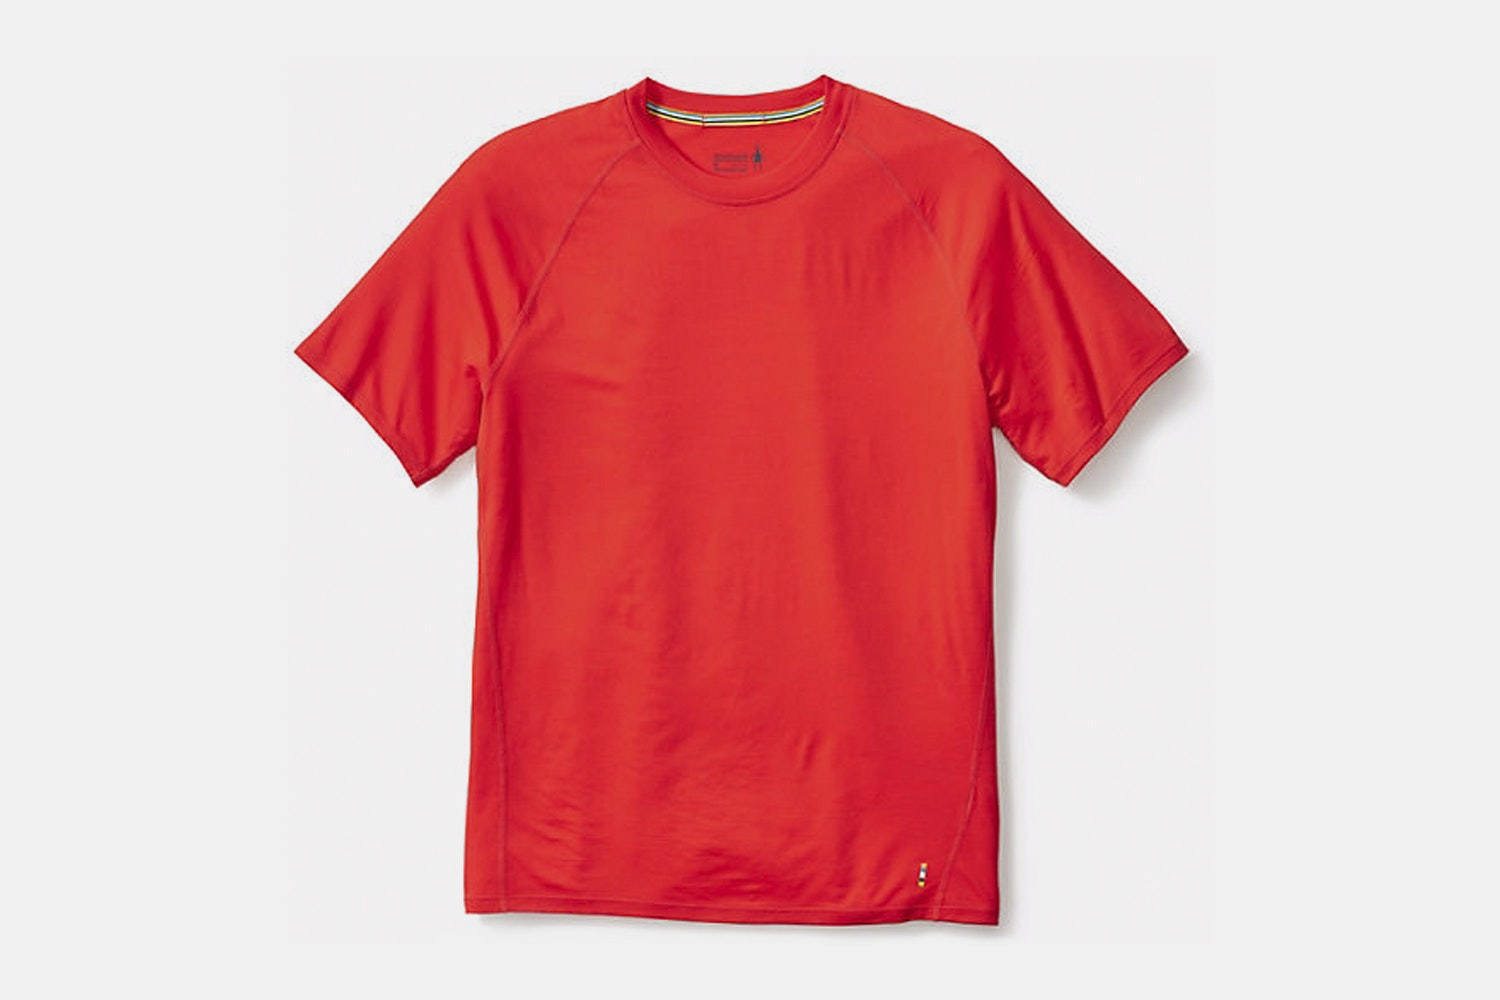 Men's – Fire Red